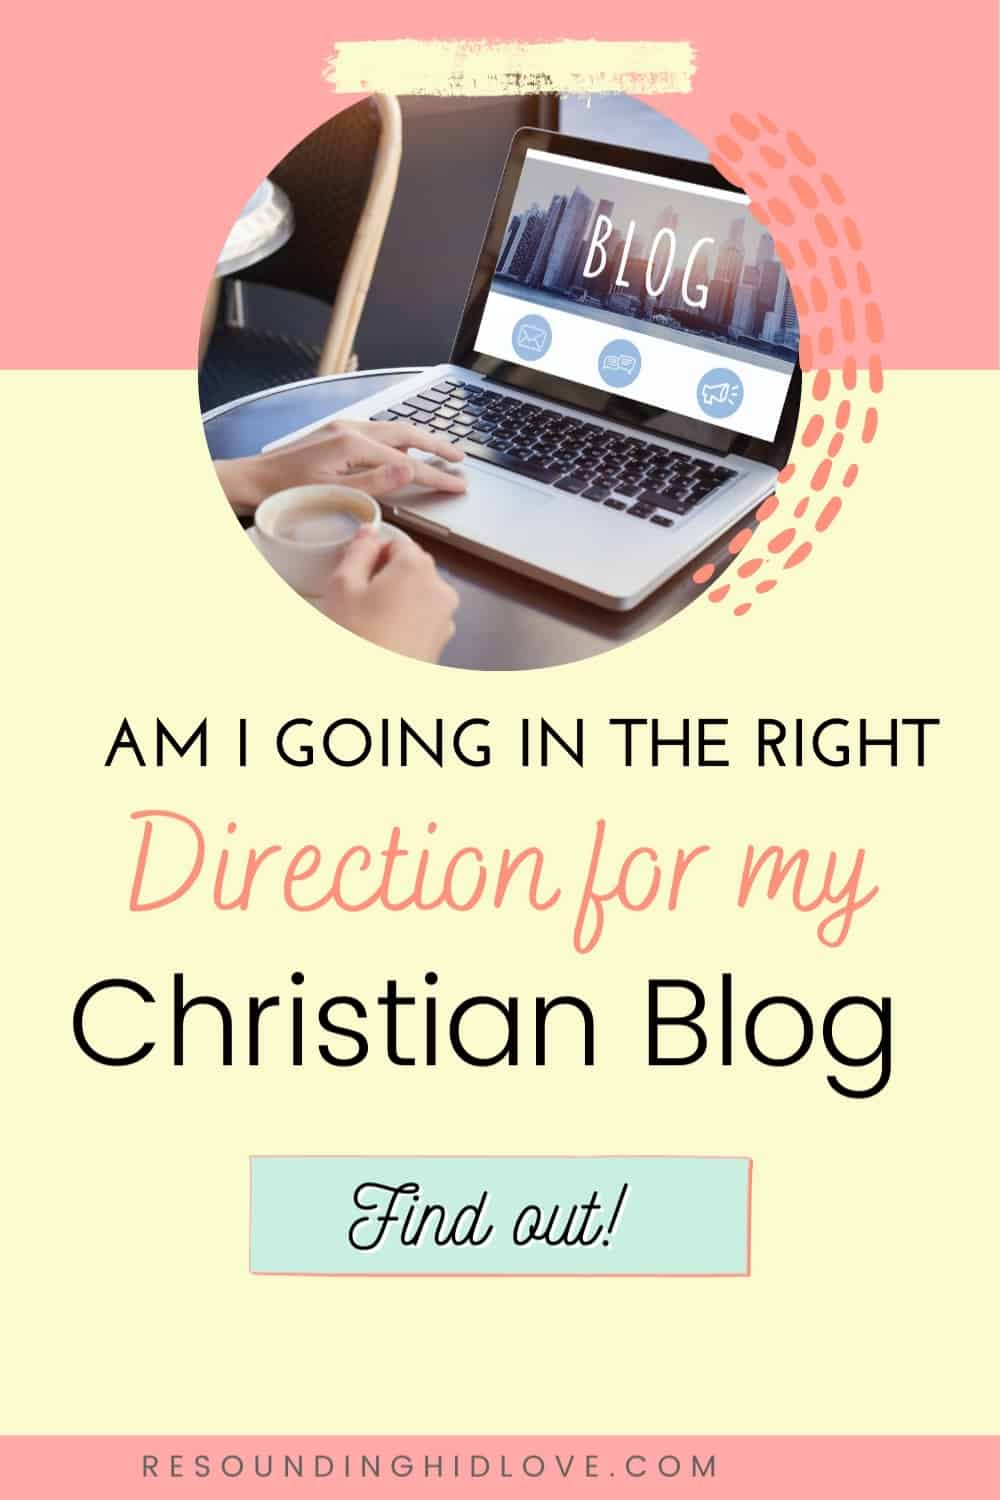 Are YOU Going the Right Direction for Your Christian Blog?